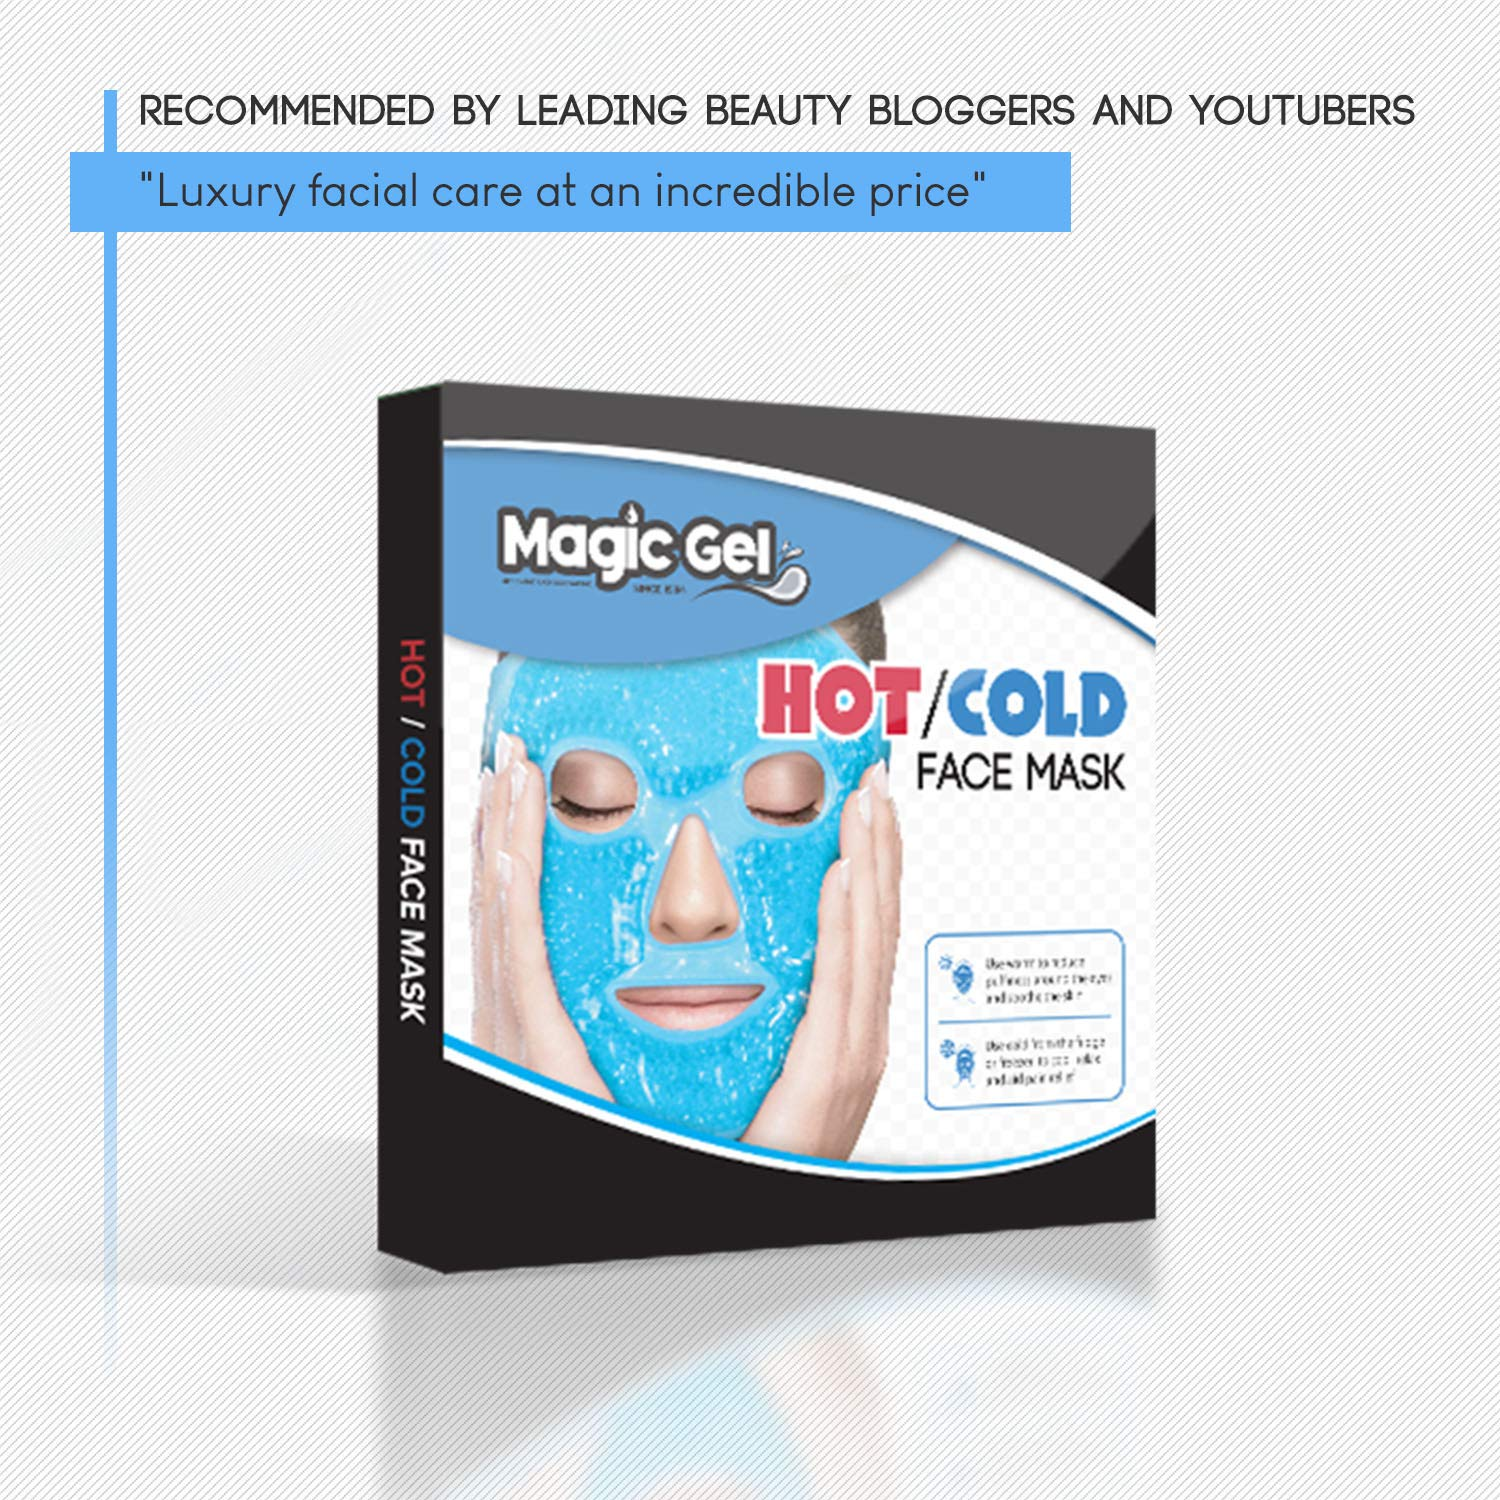 Luxury Face Cold Mask - Ice Cold Gel Pack with a Soft Cotton Backing   Premium Quality Cooling Face Ice Pack for Better Sleep, Puffy Eyes and  Improved